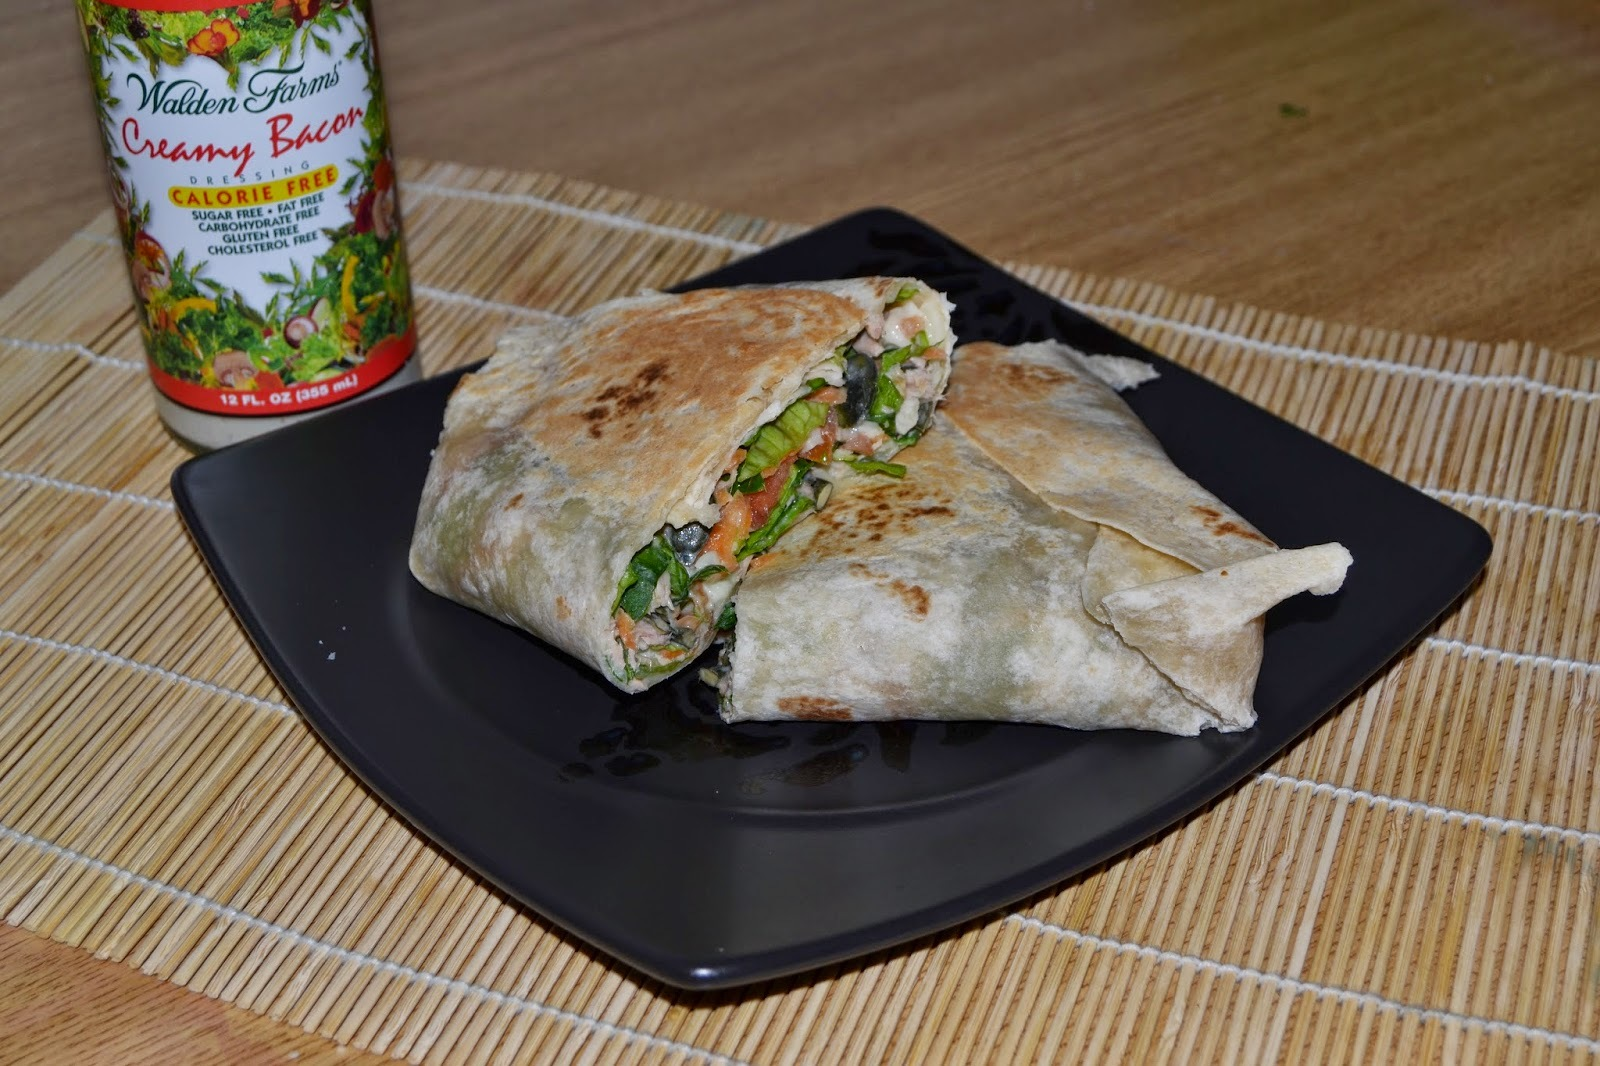 Wraps de ensalada con cream bacon